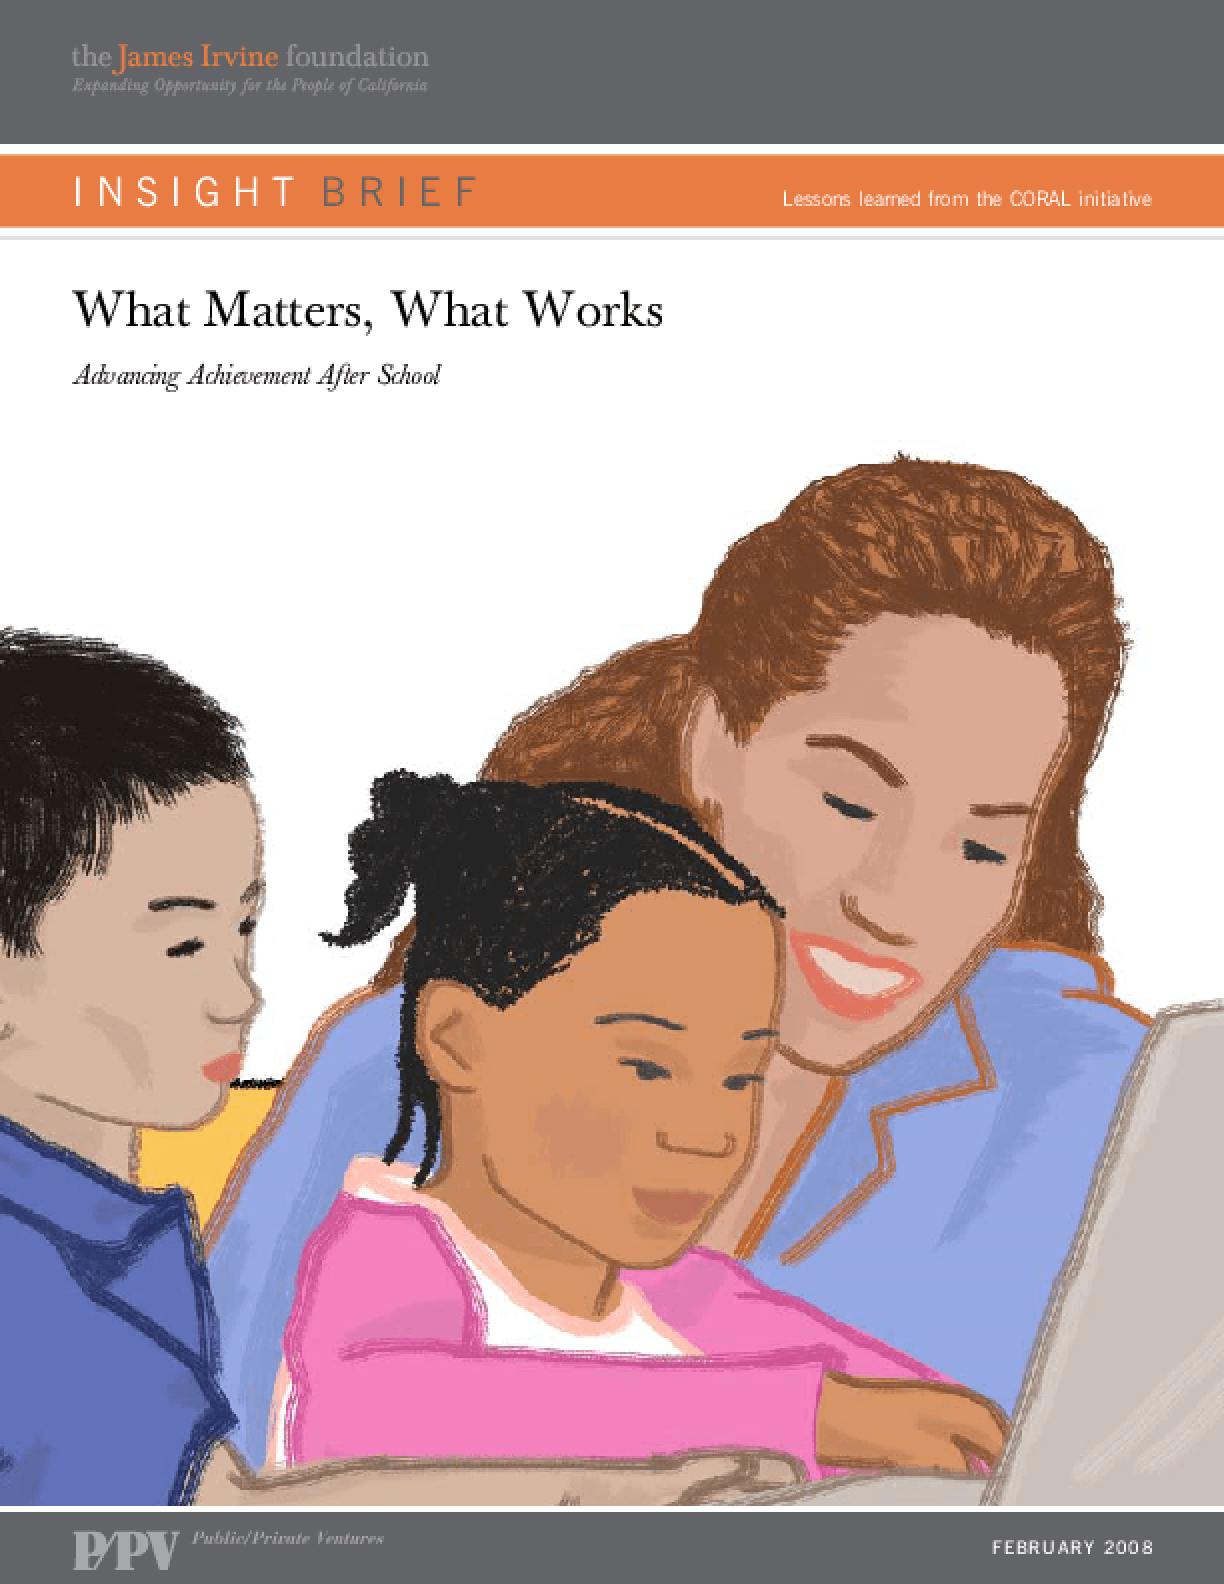 What Matters, What Works: Advancing Achievement After School